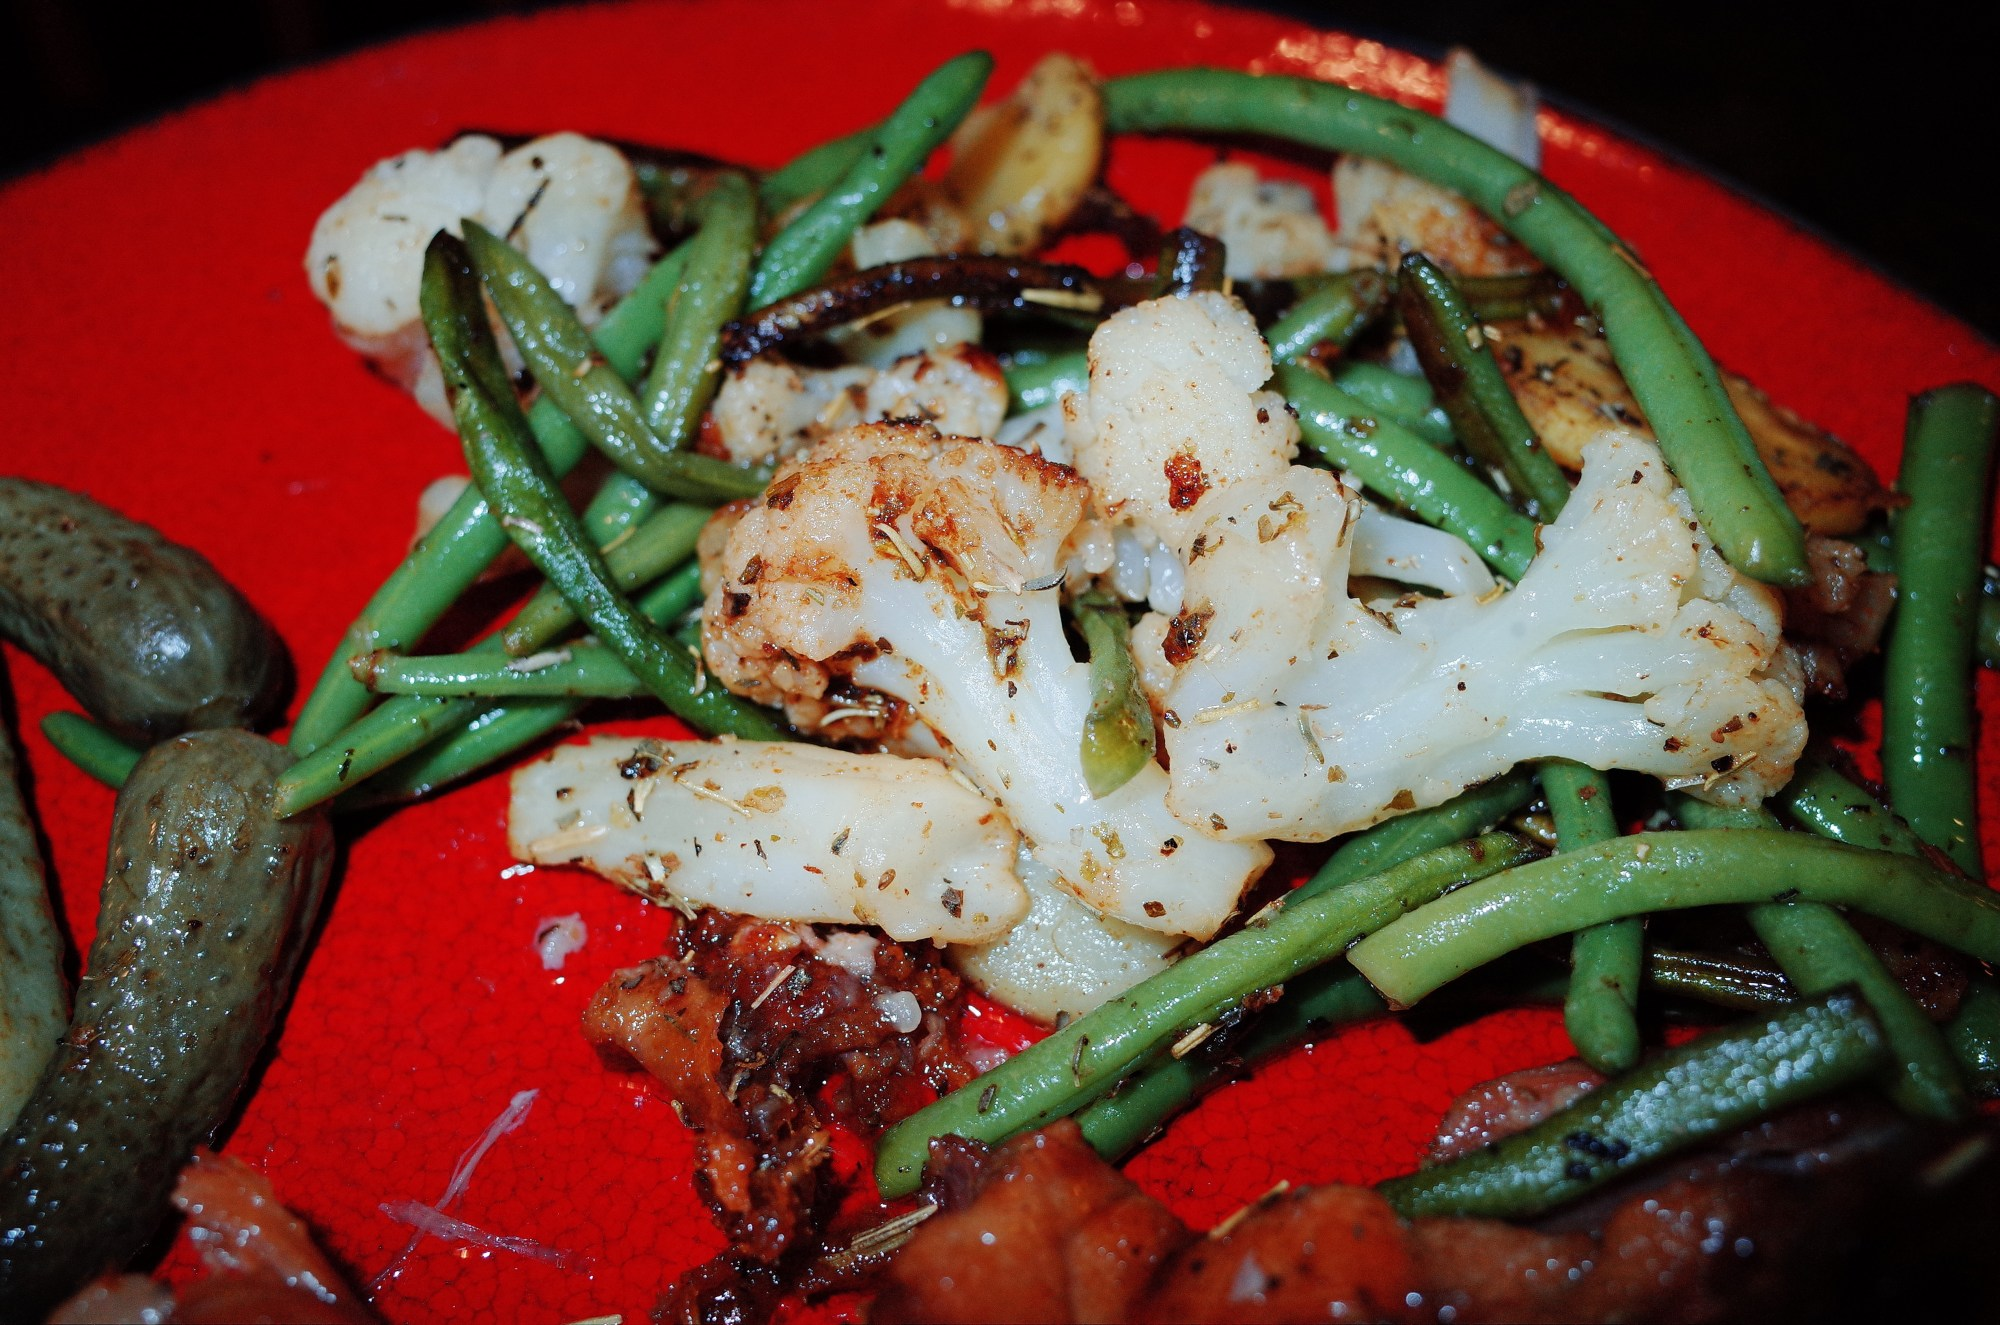 Green beans and cauliflower cooked at home in marseille